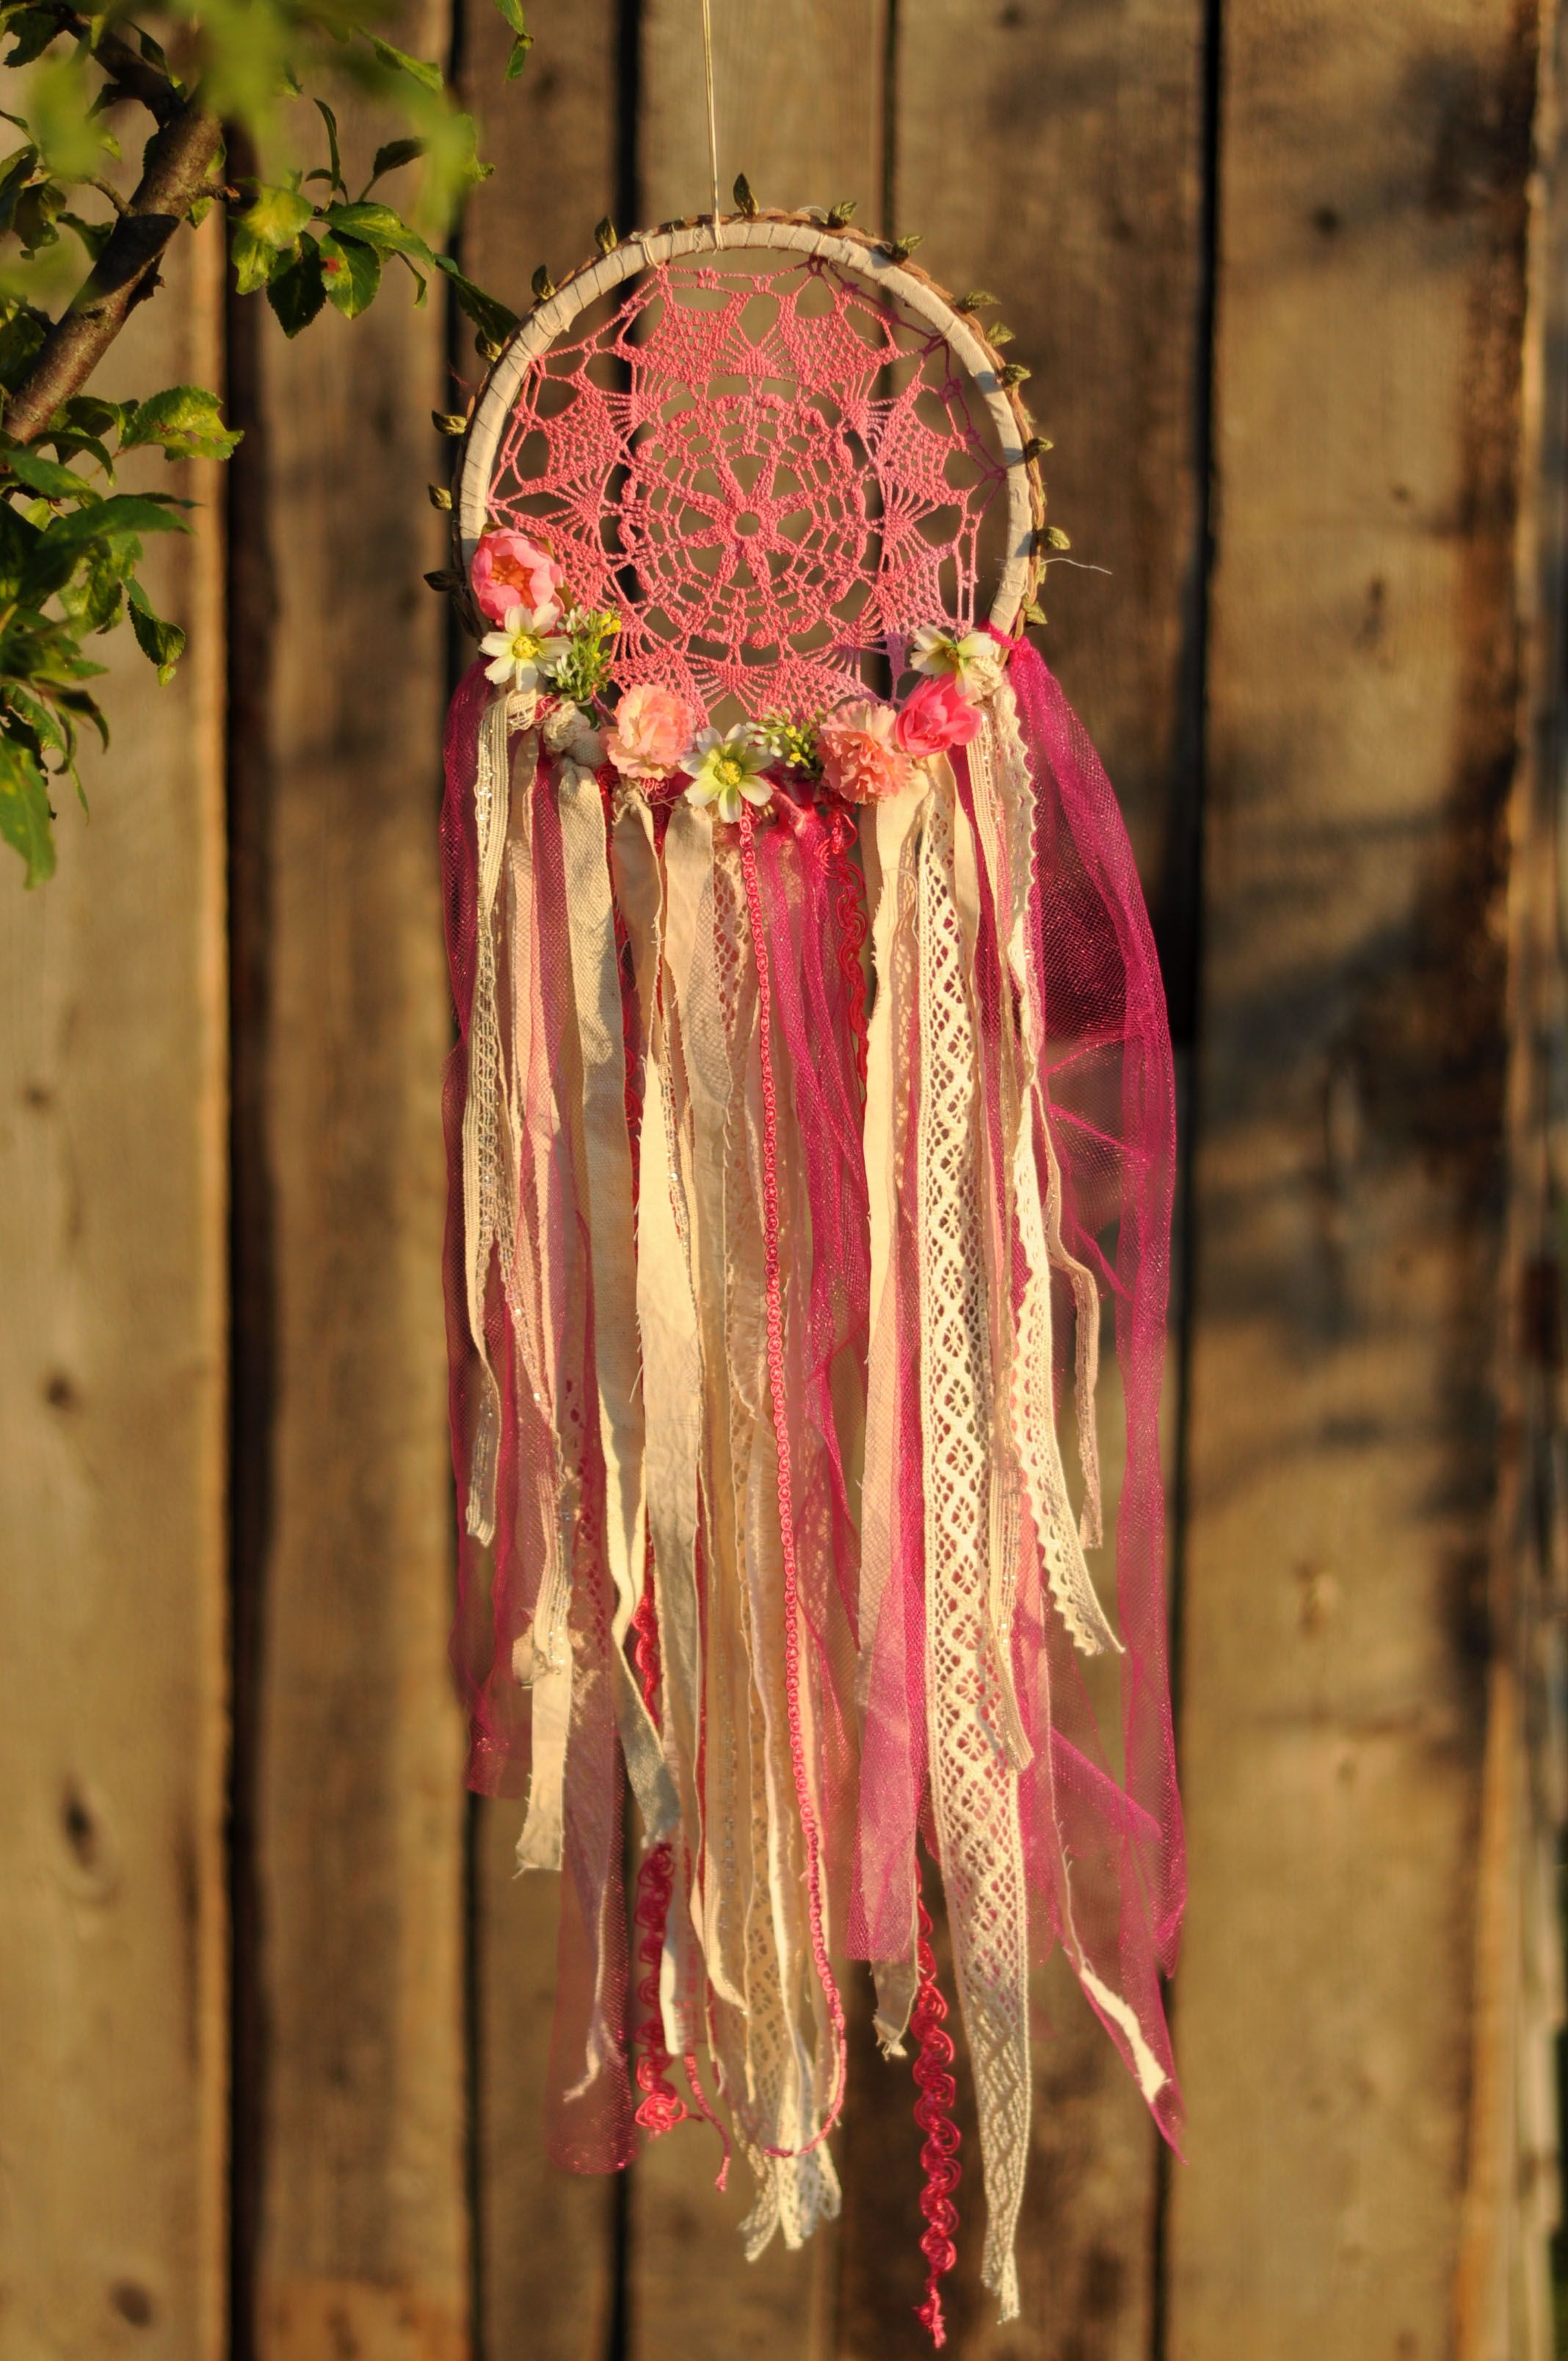 Kvetava#Dreamcatchers#Flower decorations